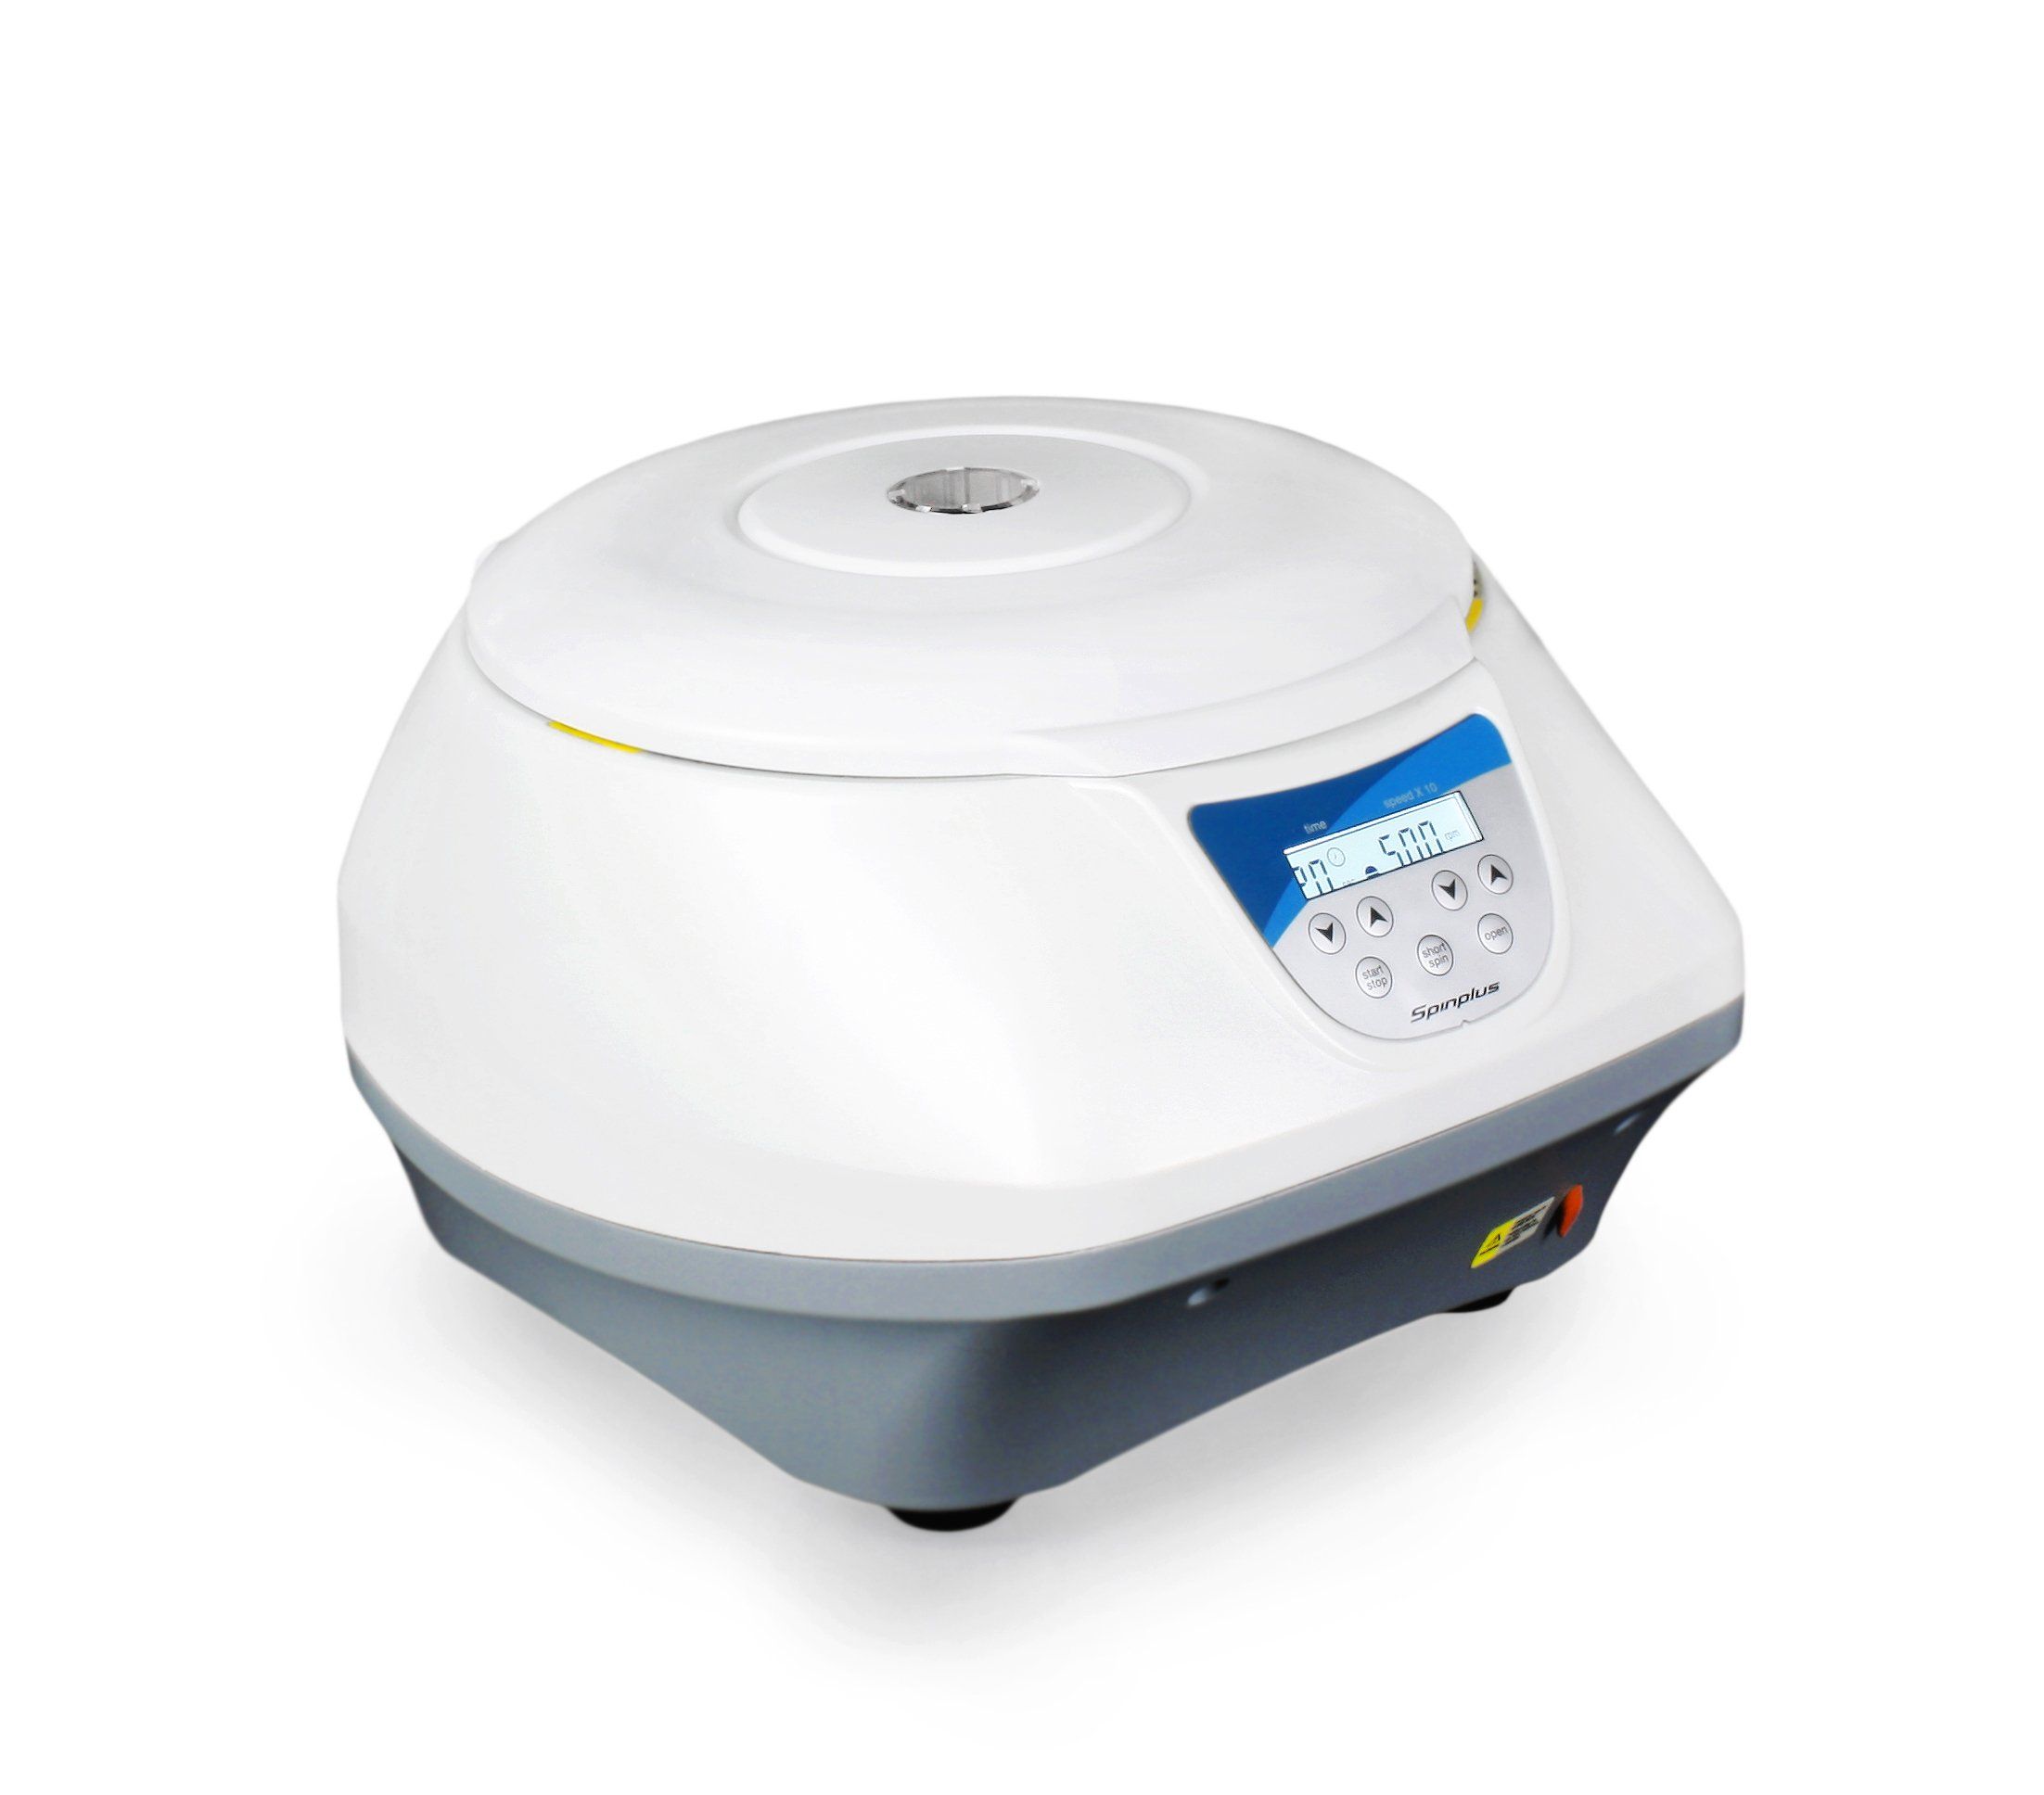 Parco Scientific Digital Bench-top Centrifuge,100-5000rpm (Max. 3074xg), LCD Display, Includes 15ML X 6 Rotor by Parco Scientific (Image #3)